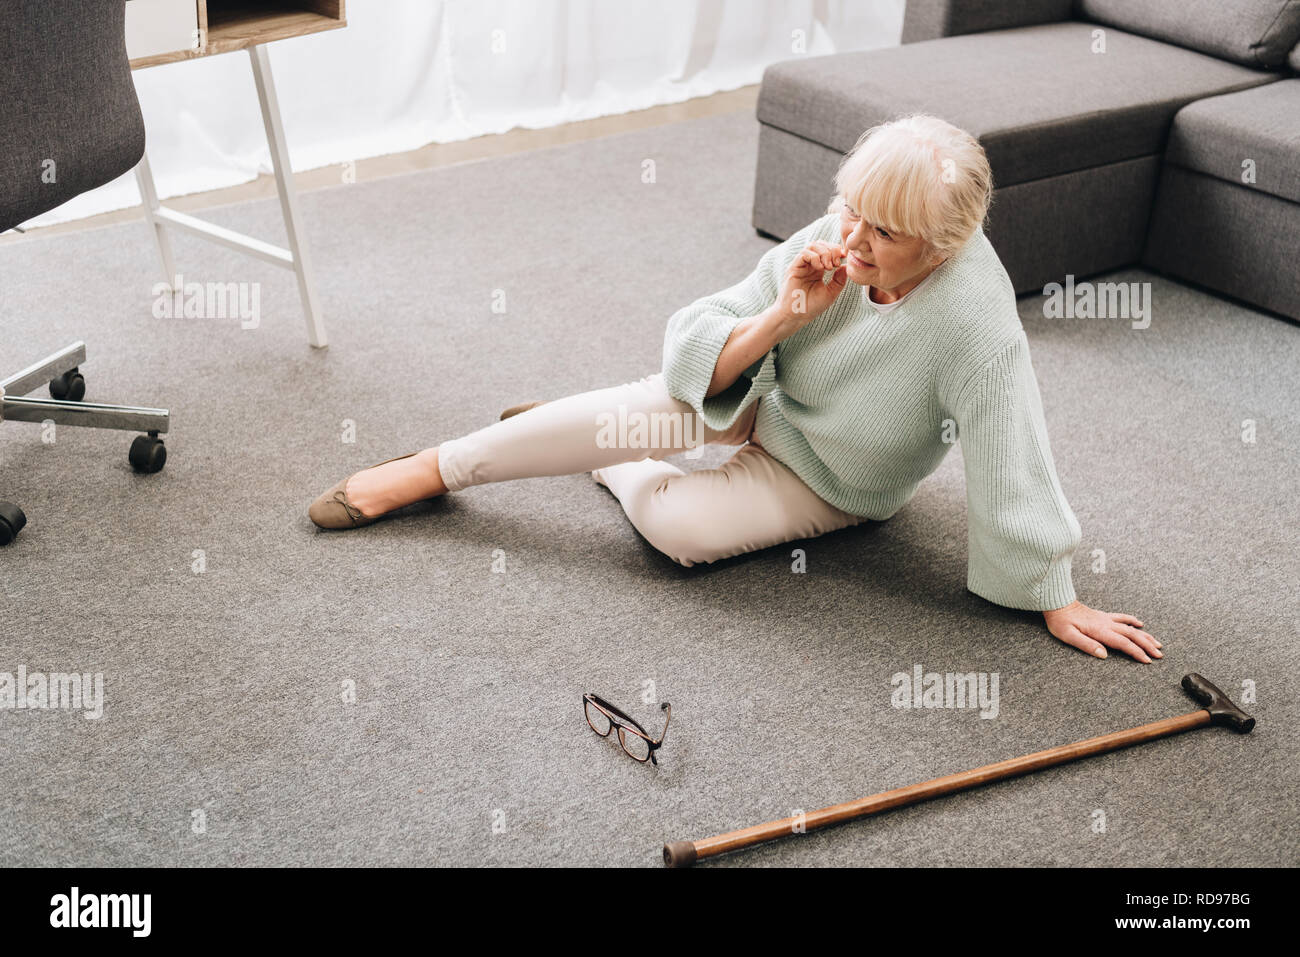 lonely senior woman with blonde hair sitting on floor in living room - Stock Image